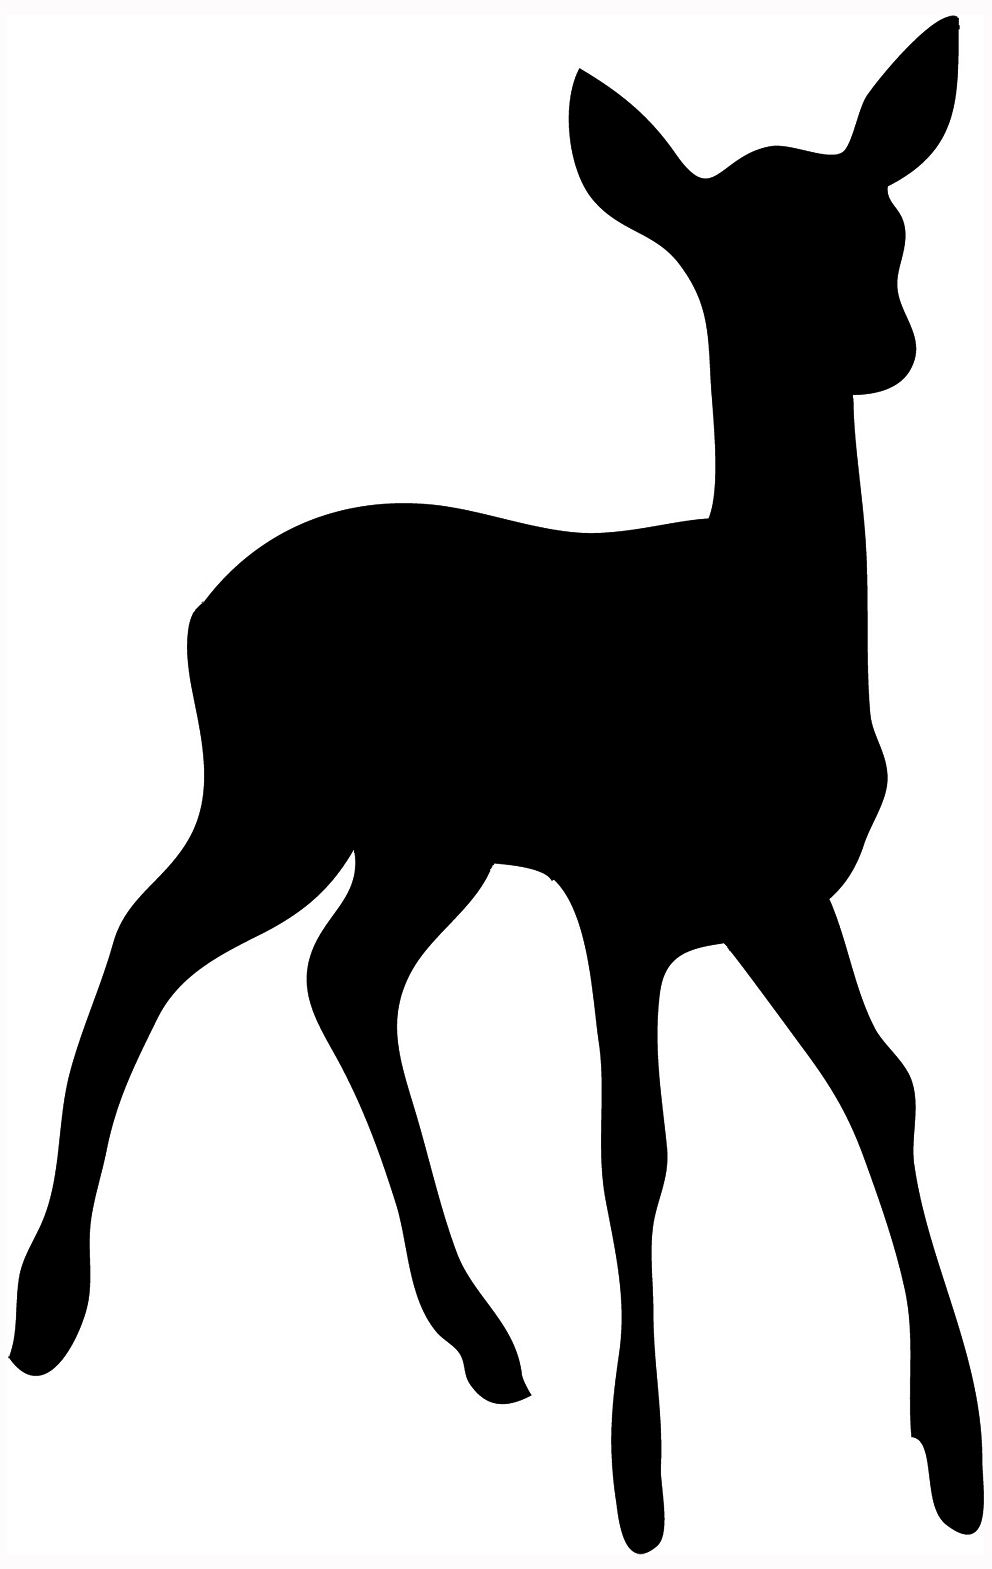 Silhouette clipart on newspaper clip art royalty free download Animal Silhouette, Silhouette Clip Art | paper | Silhouette ... clip art royalty free download